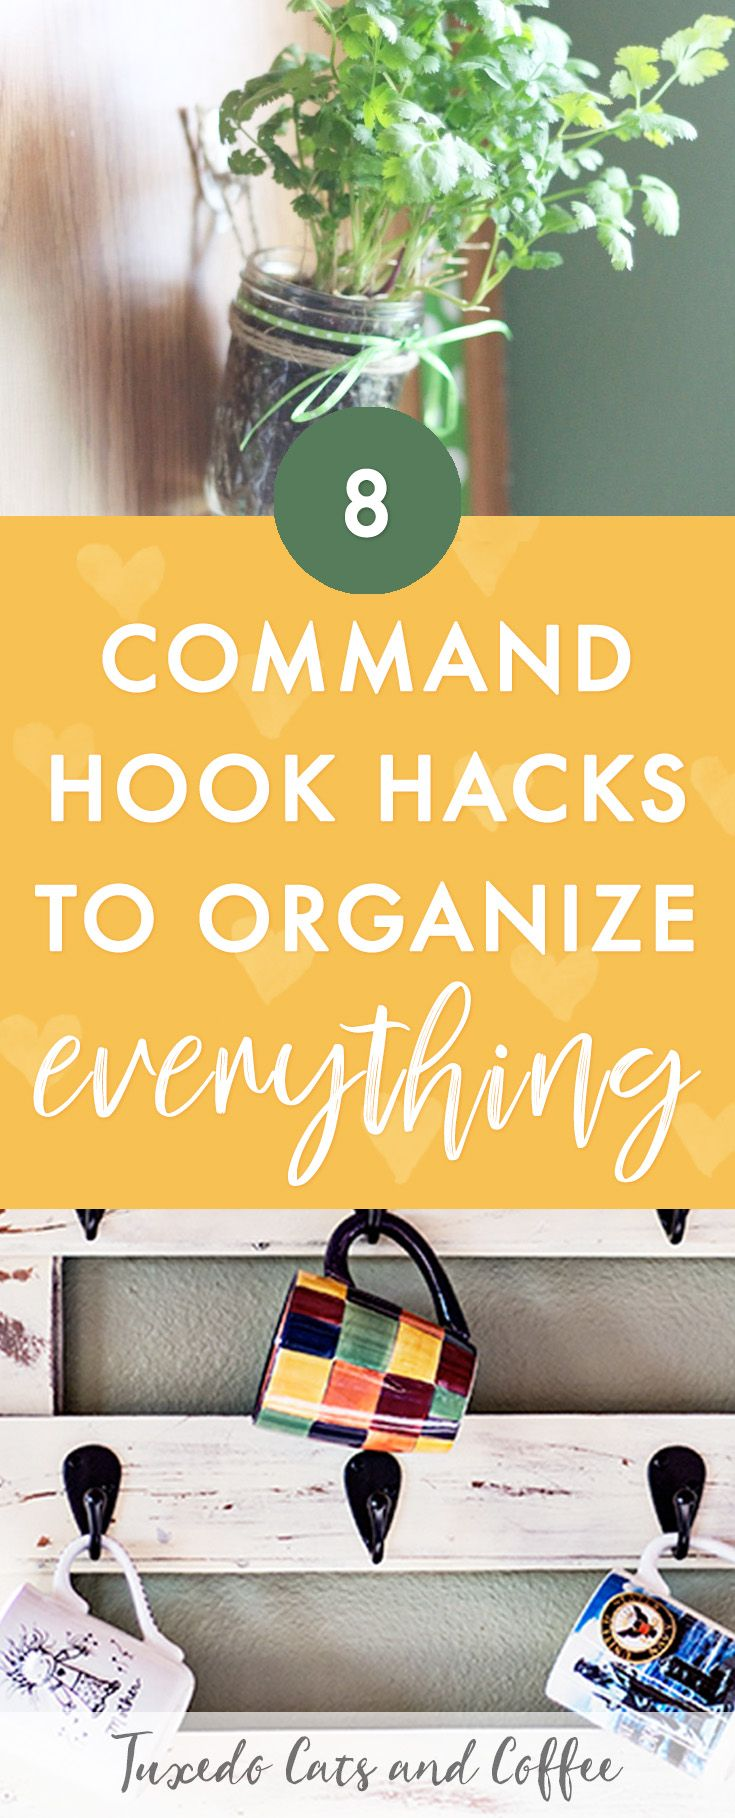 37 best Hang it how to images on Pinterest | Good ideas, Hanging ...